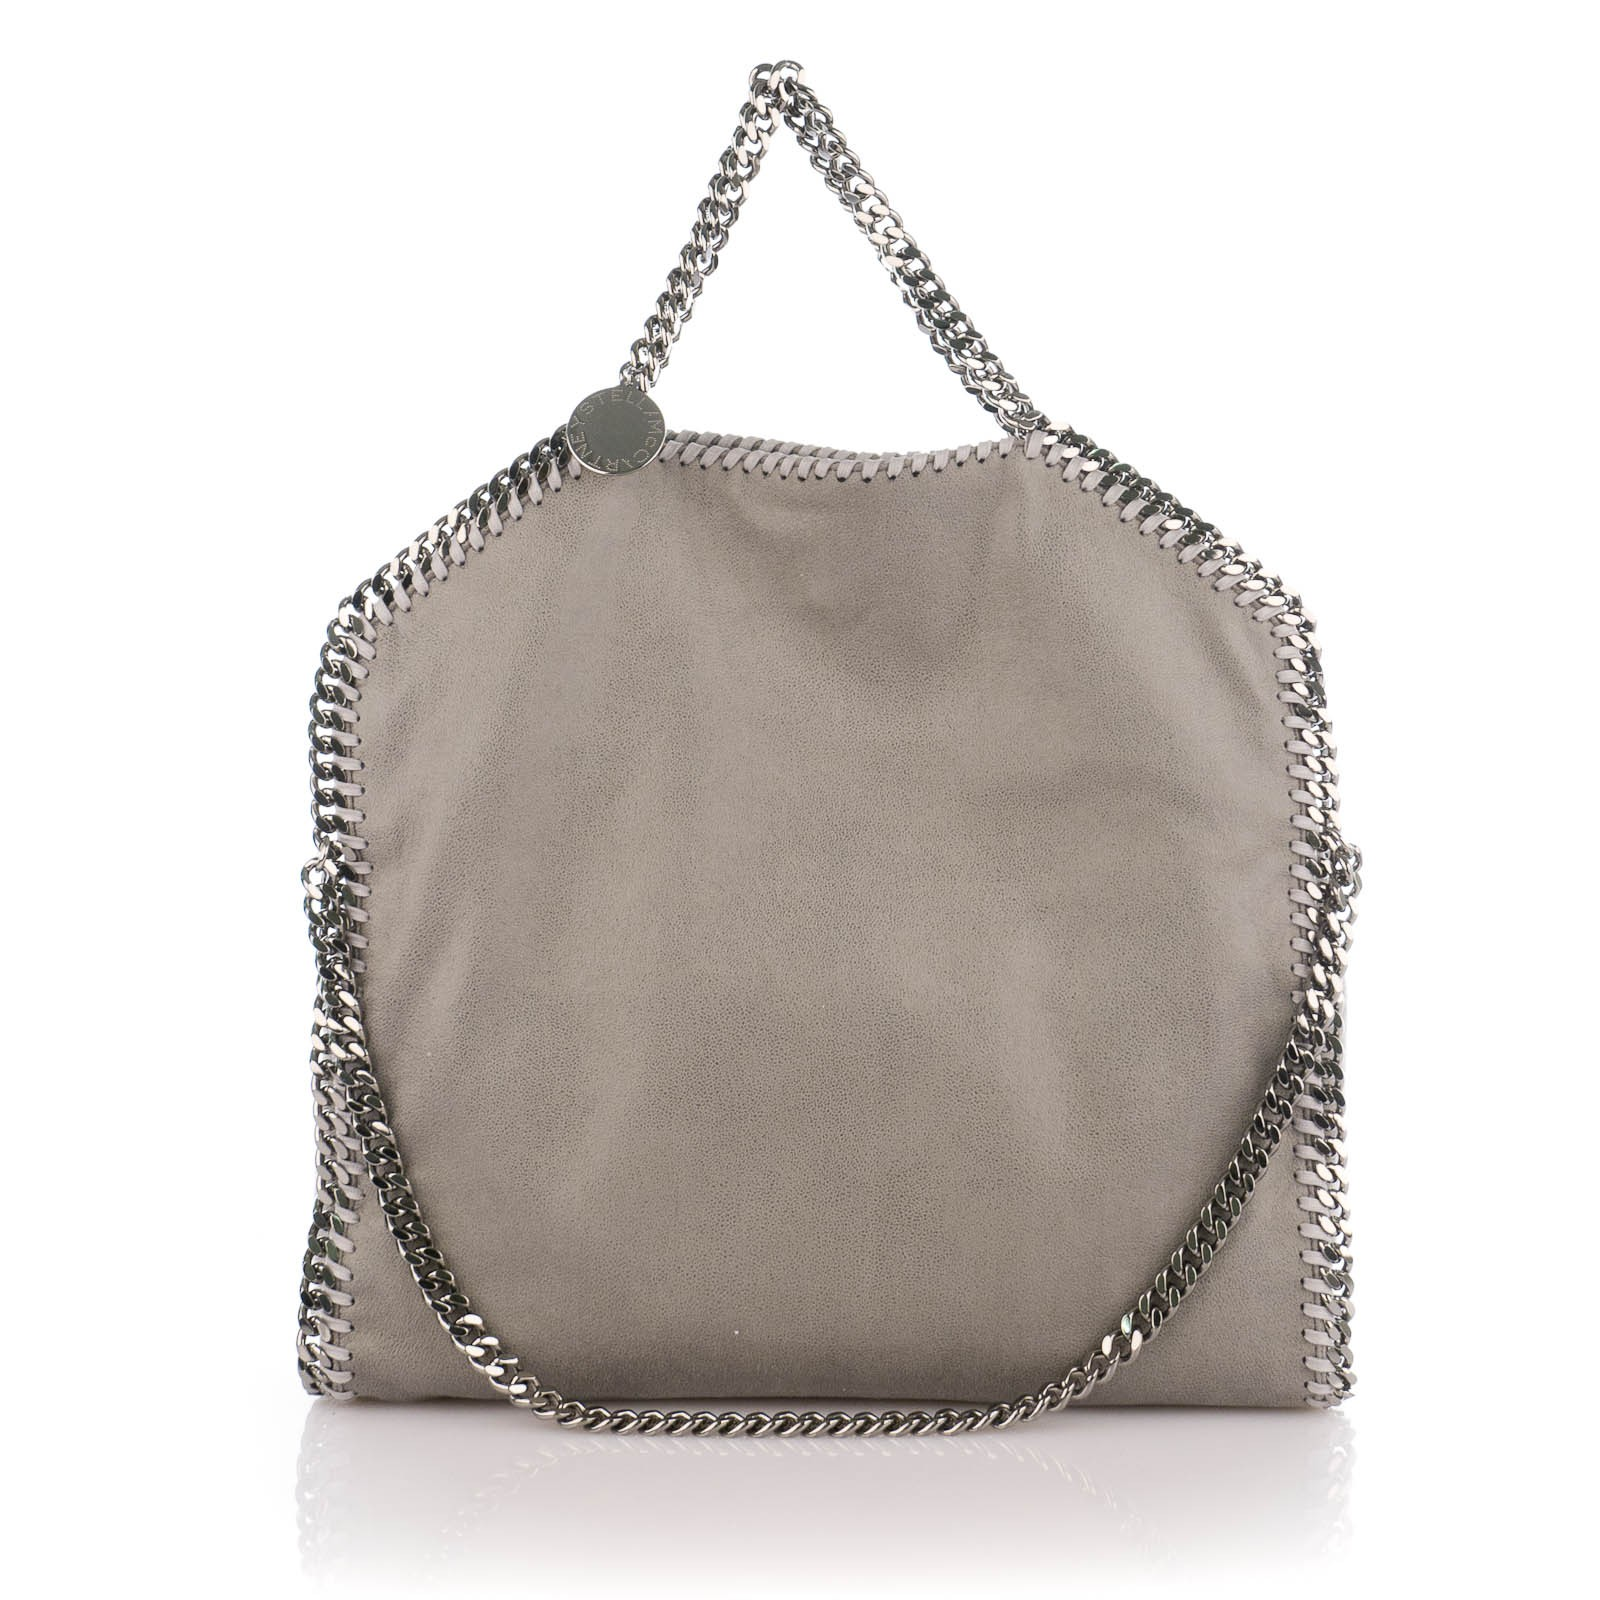 http://3.bp.blogspot.com/-rwt-JLSlOGE/UFl3fqLwswI/AAAAAAAAA7U/bCeVwG5xa-E/s1600/borsa-stella-mc-cartney-light-grey-234387-w91321220-e32-a.jpg